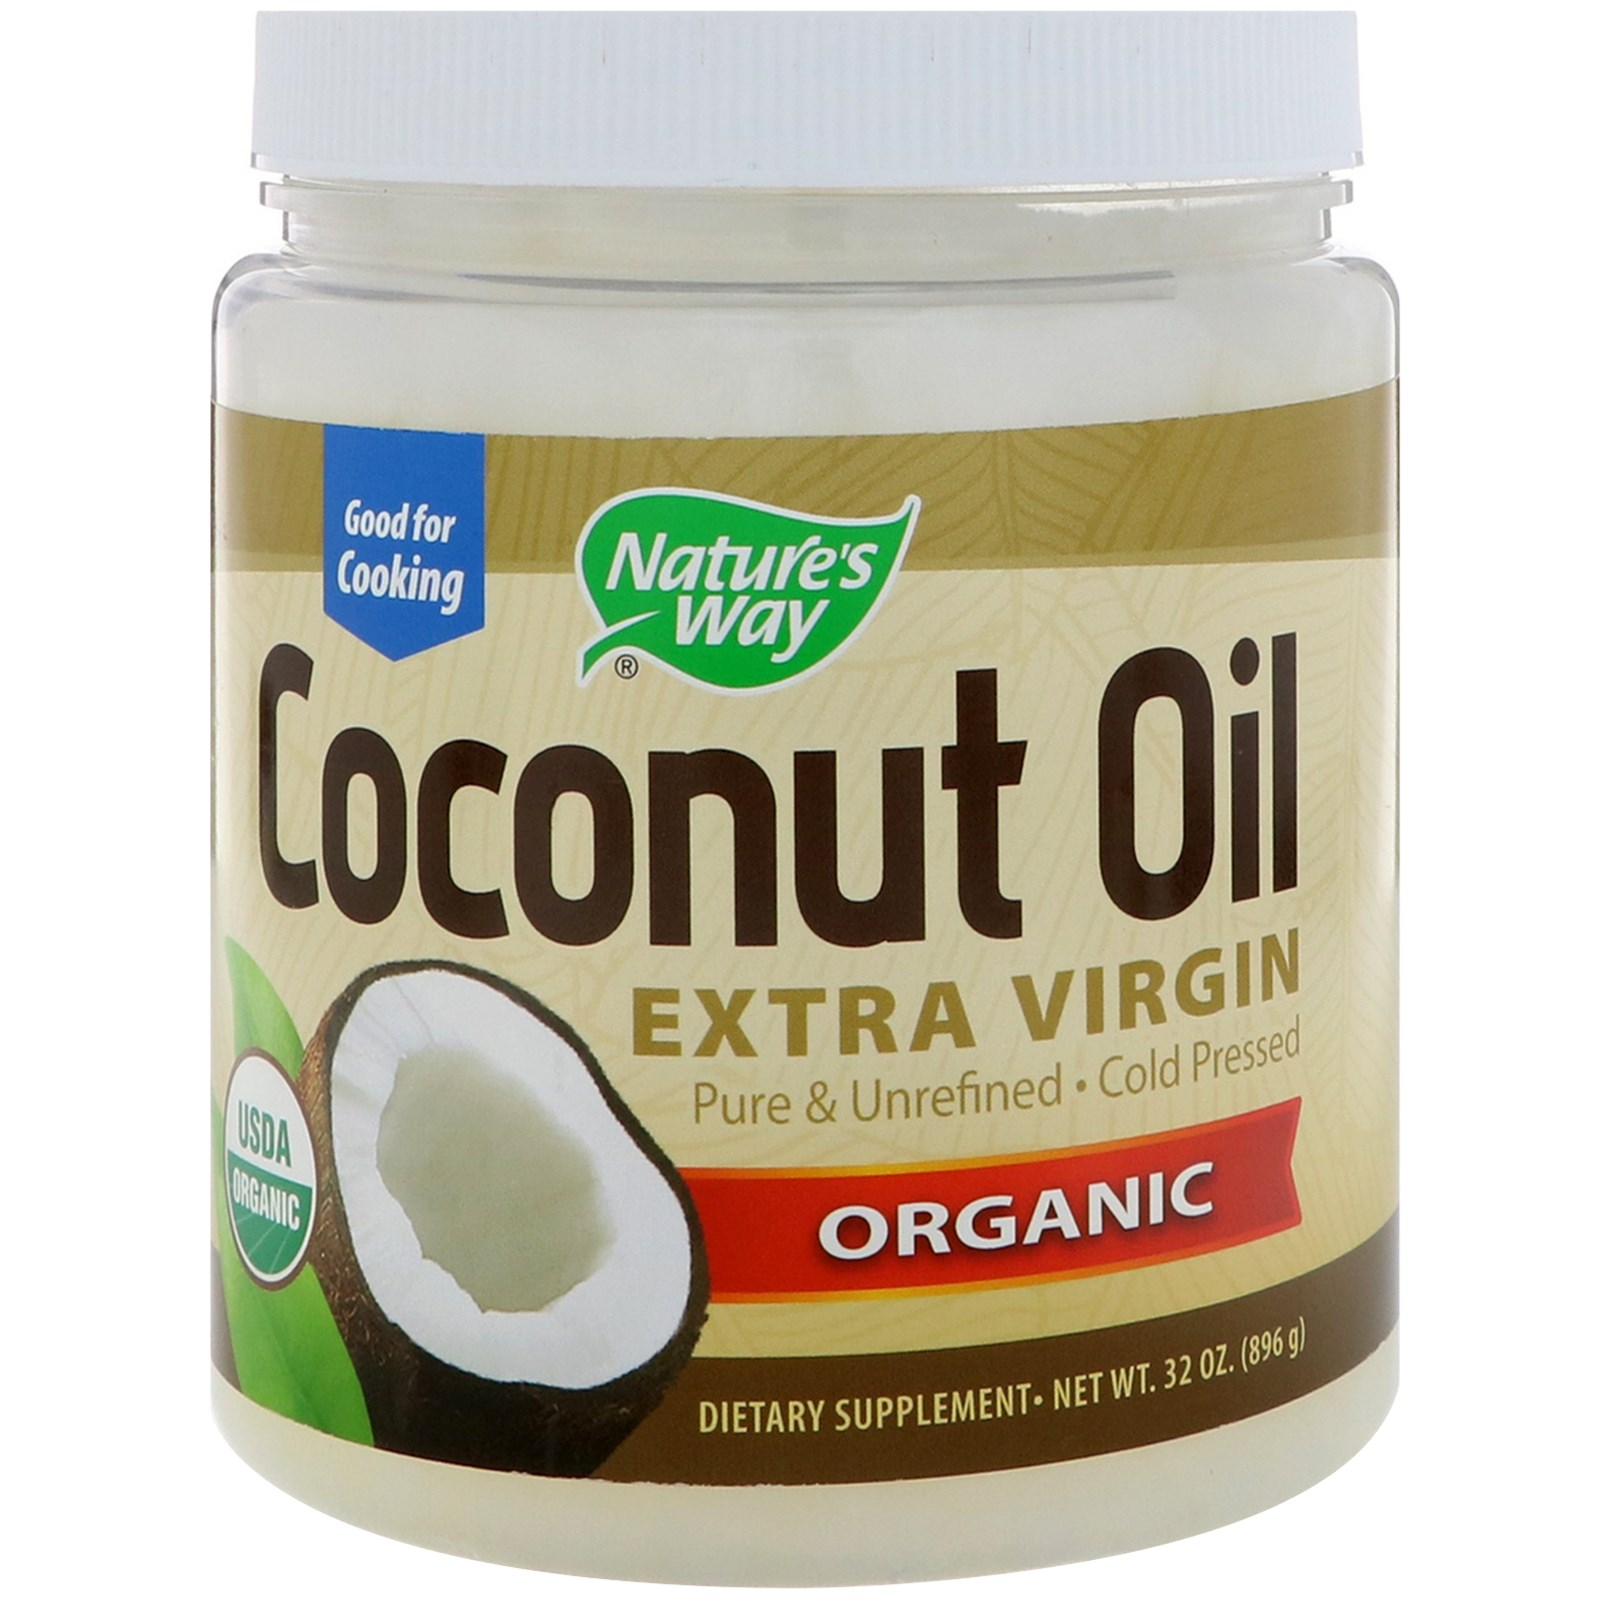 Nature's Way, Organic, Coconut Oil, Extra Virgin, 32 oz (896 g)